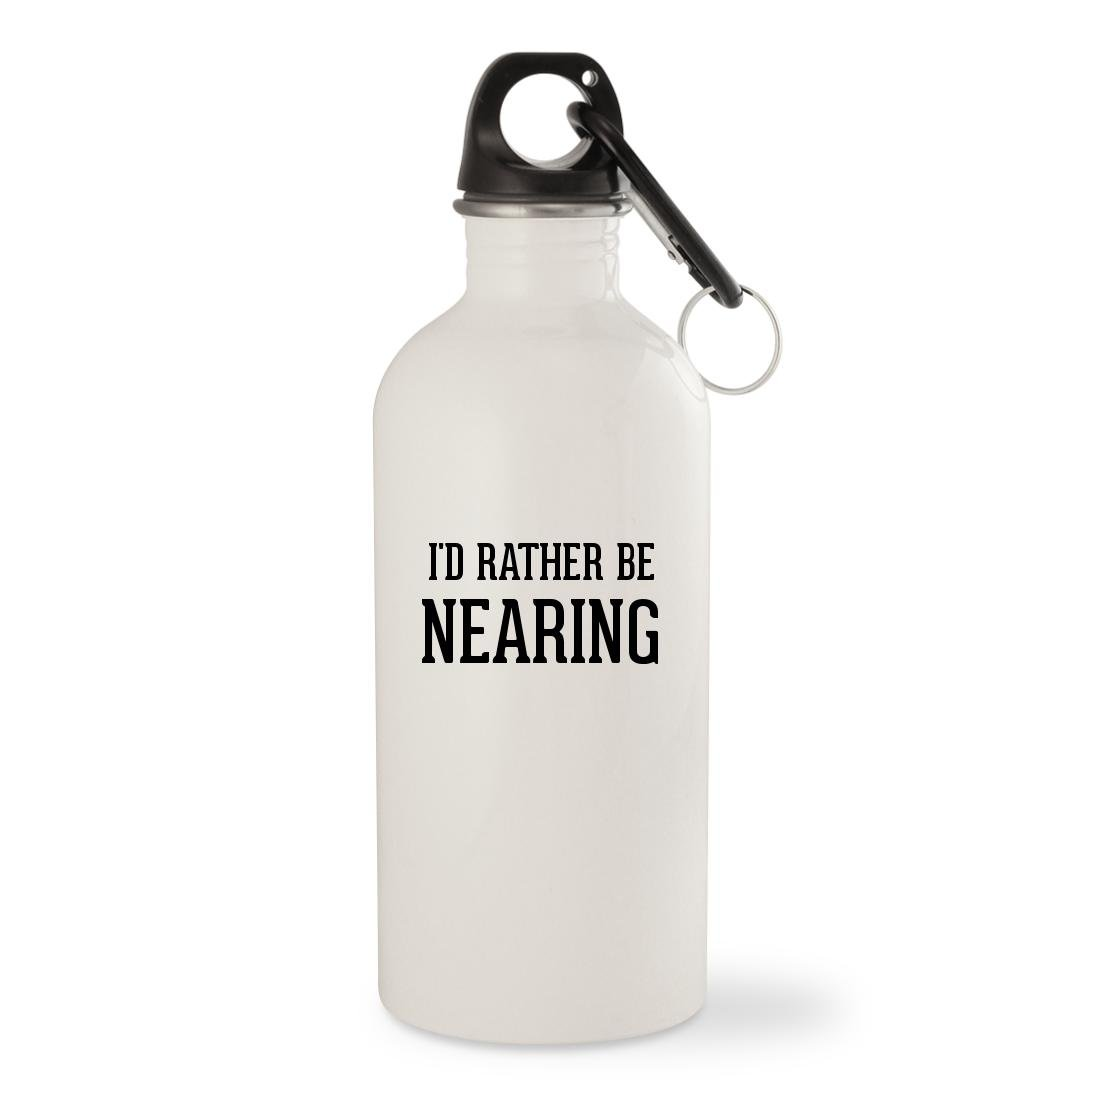 I'd Rather Be NEARING - White 20oz Stainless Steel Water Bottle with Carabiner